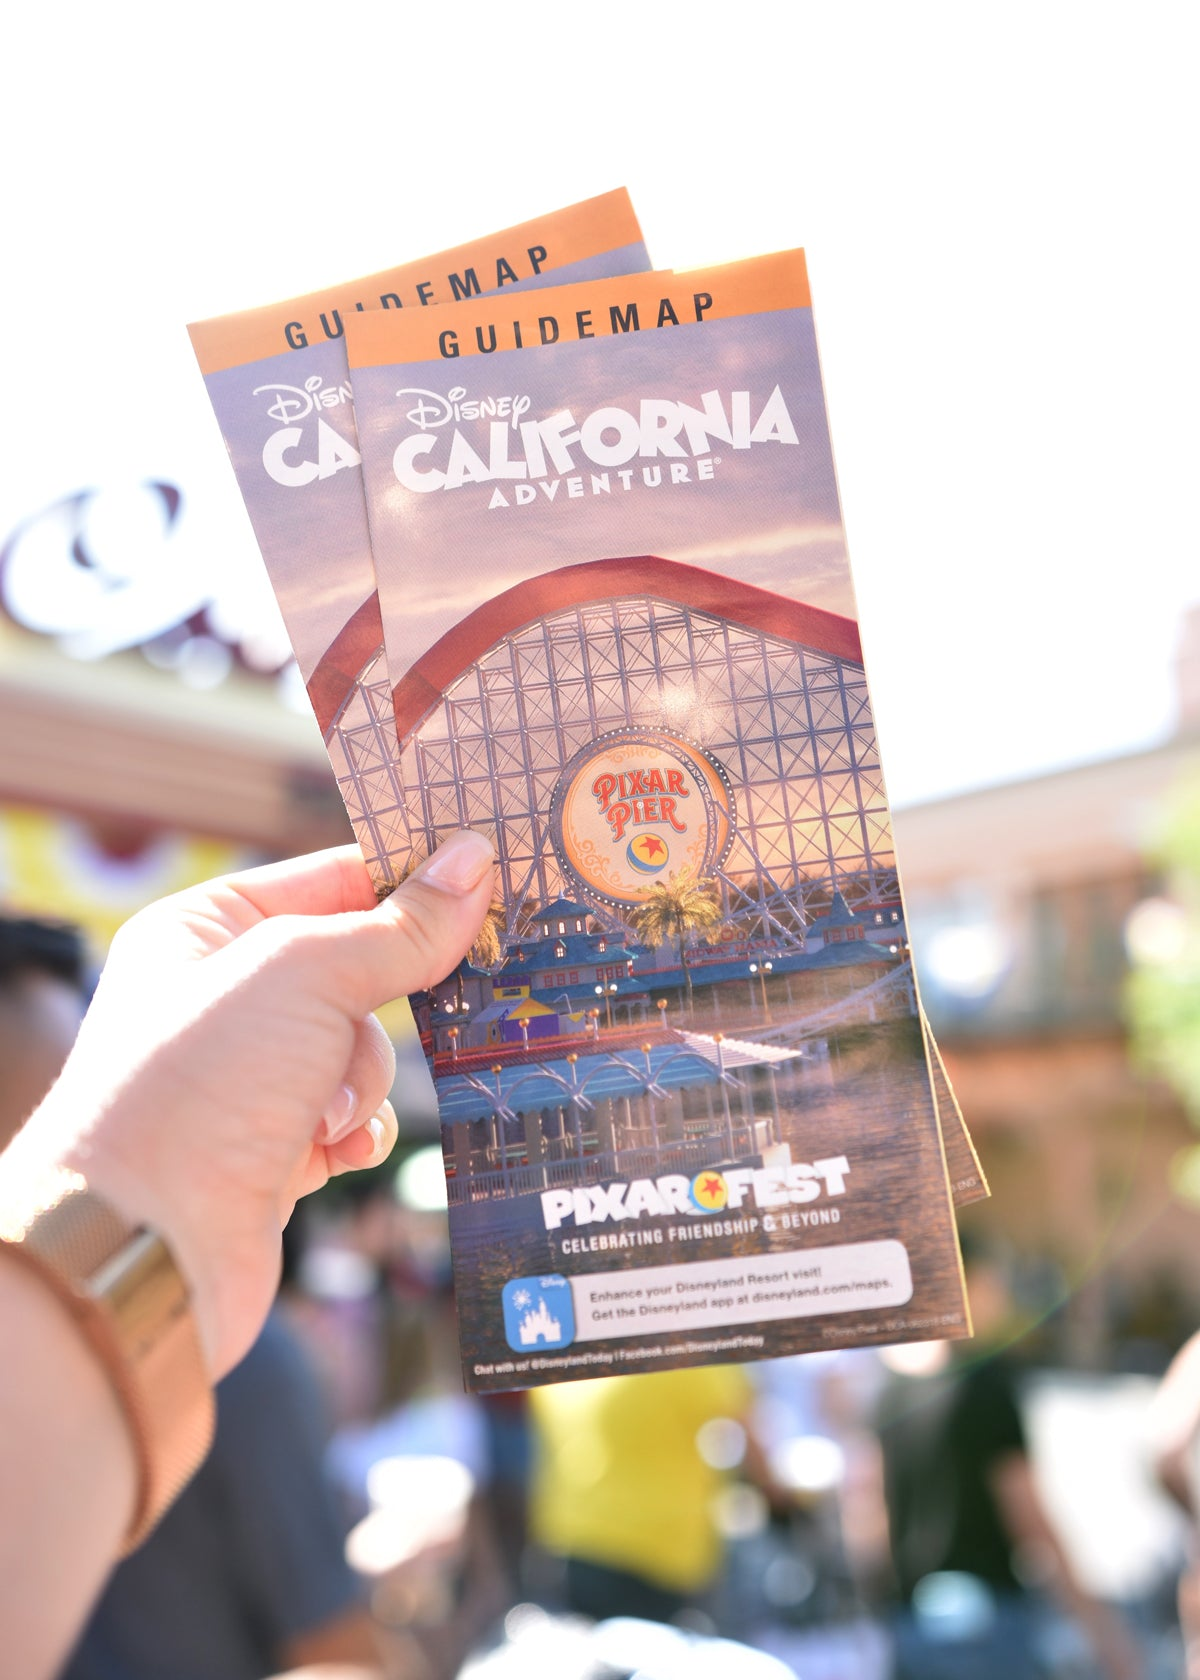 Thoughts on Pixar Pier and Photo Tour | D3tees.com